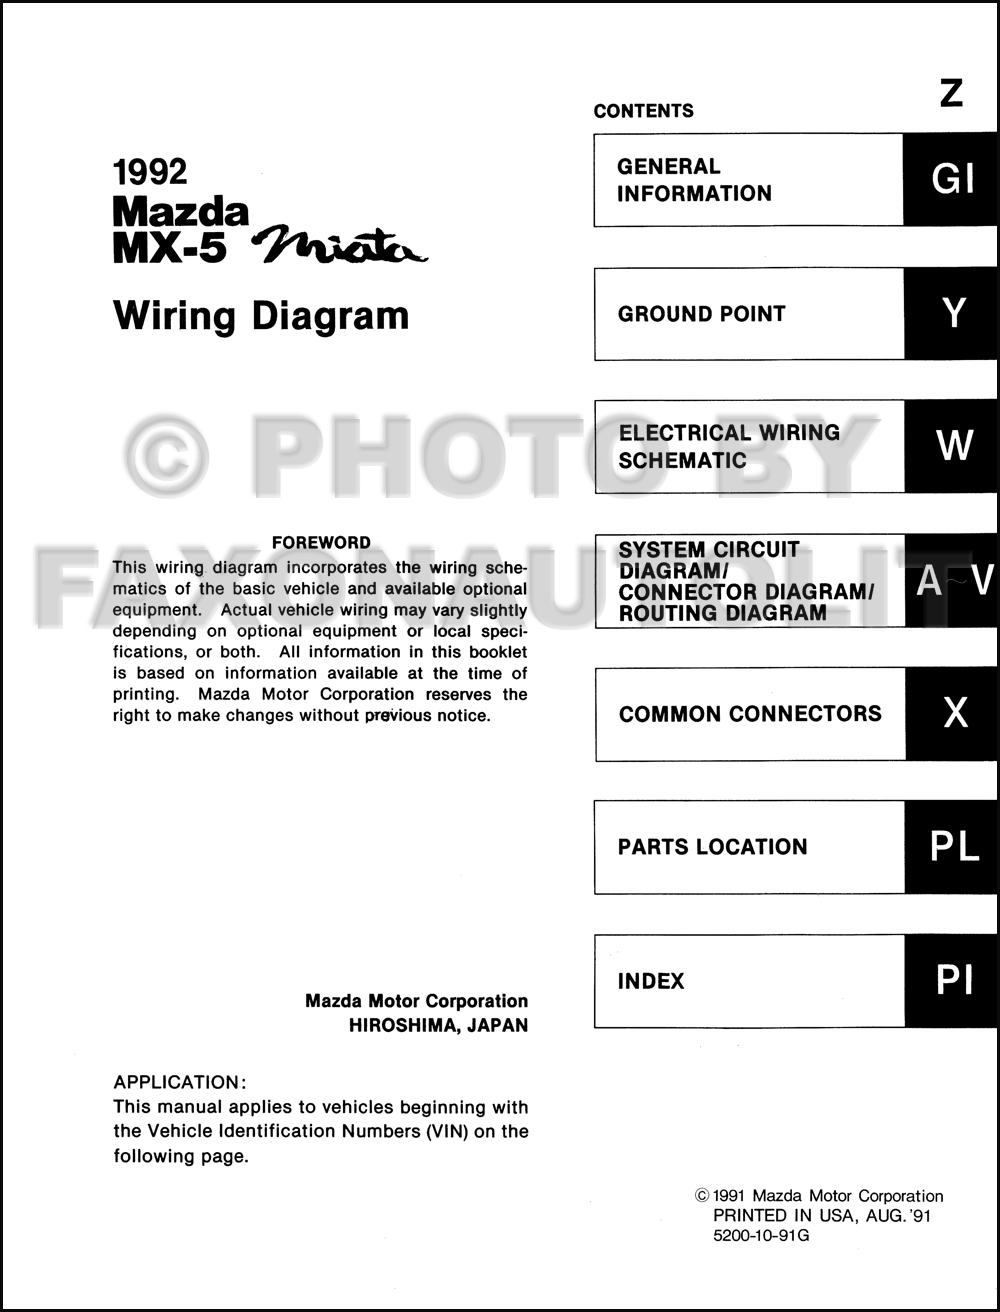 1992 mazda mx-5 miata wiring diagram manual original  click on thumbnail to  zoom